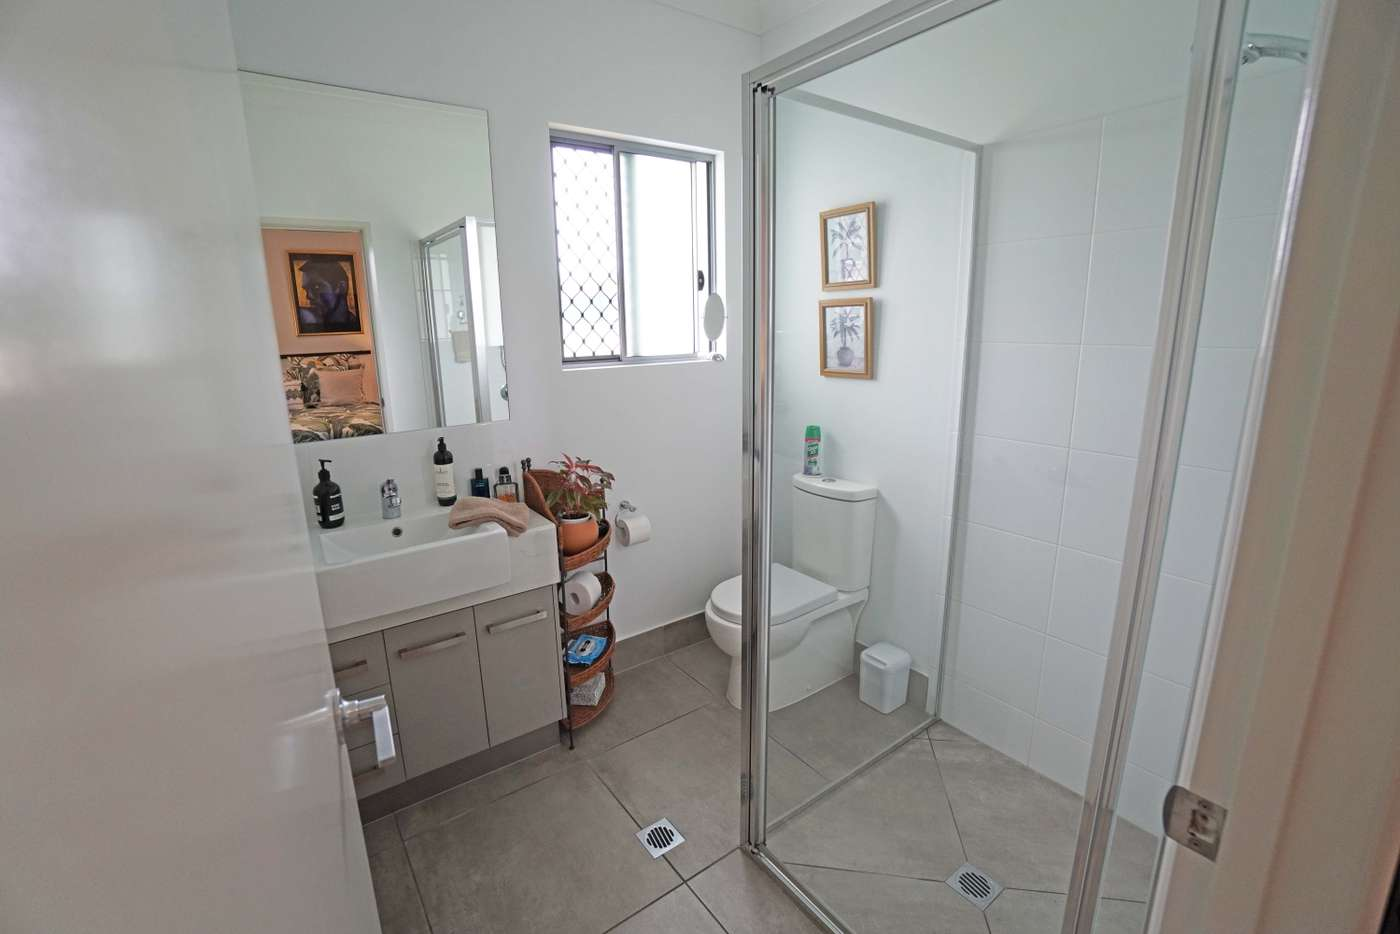 Sixth view of Homely house listing, 11 Luisa Circuit, Mareeba QLD 4880